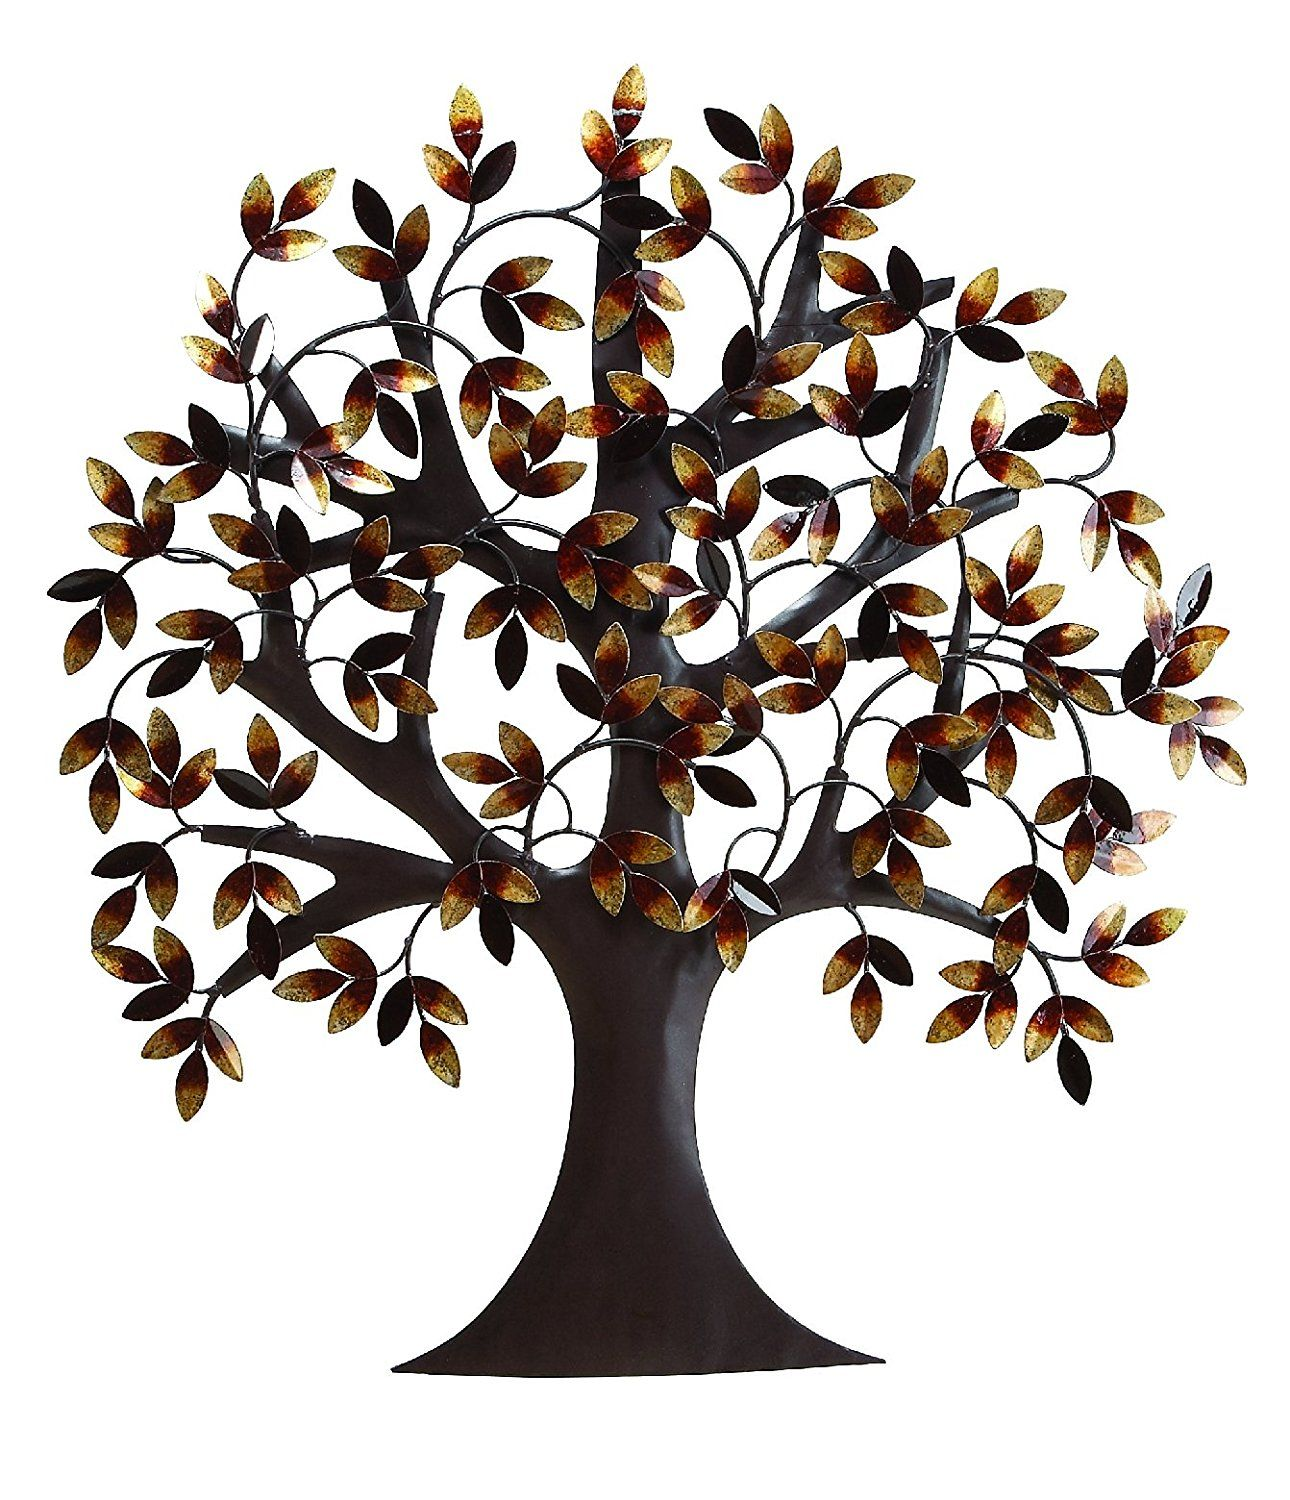 Deco metal tree wall decor for elite class decor enthusiasts